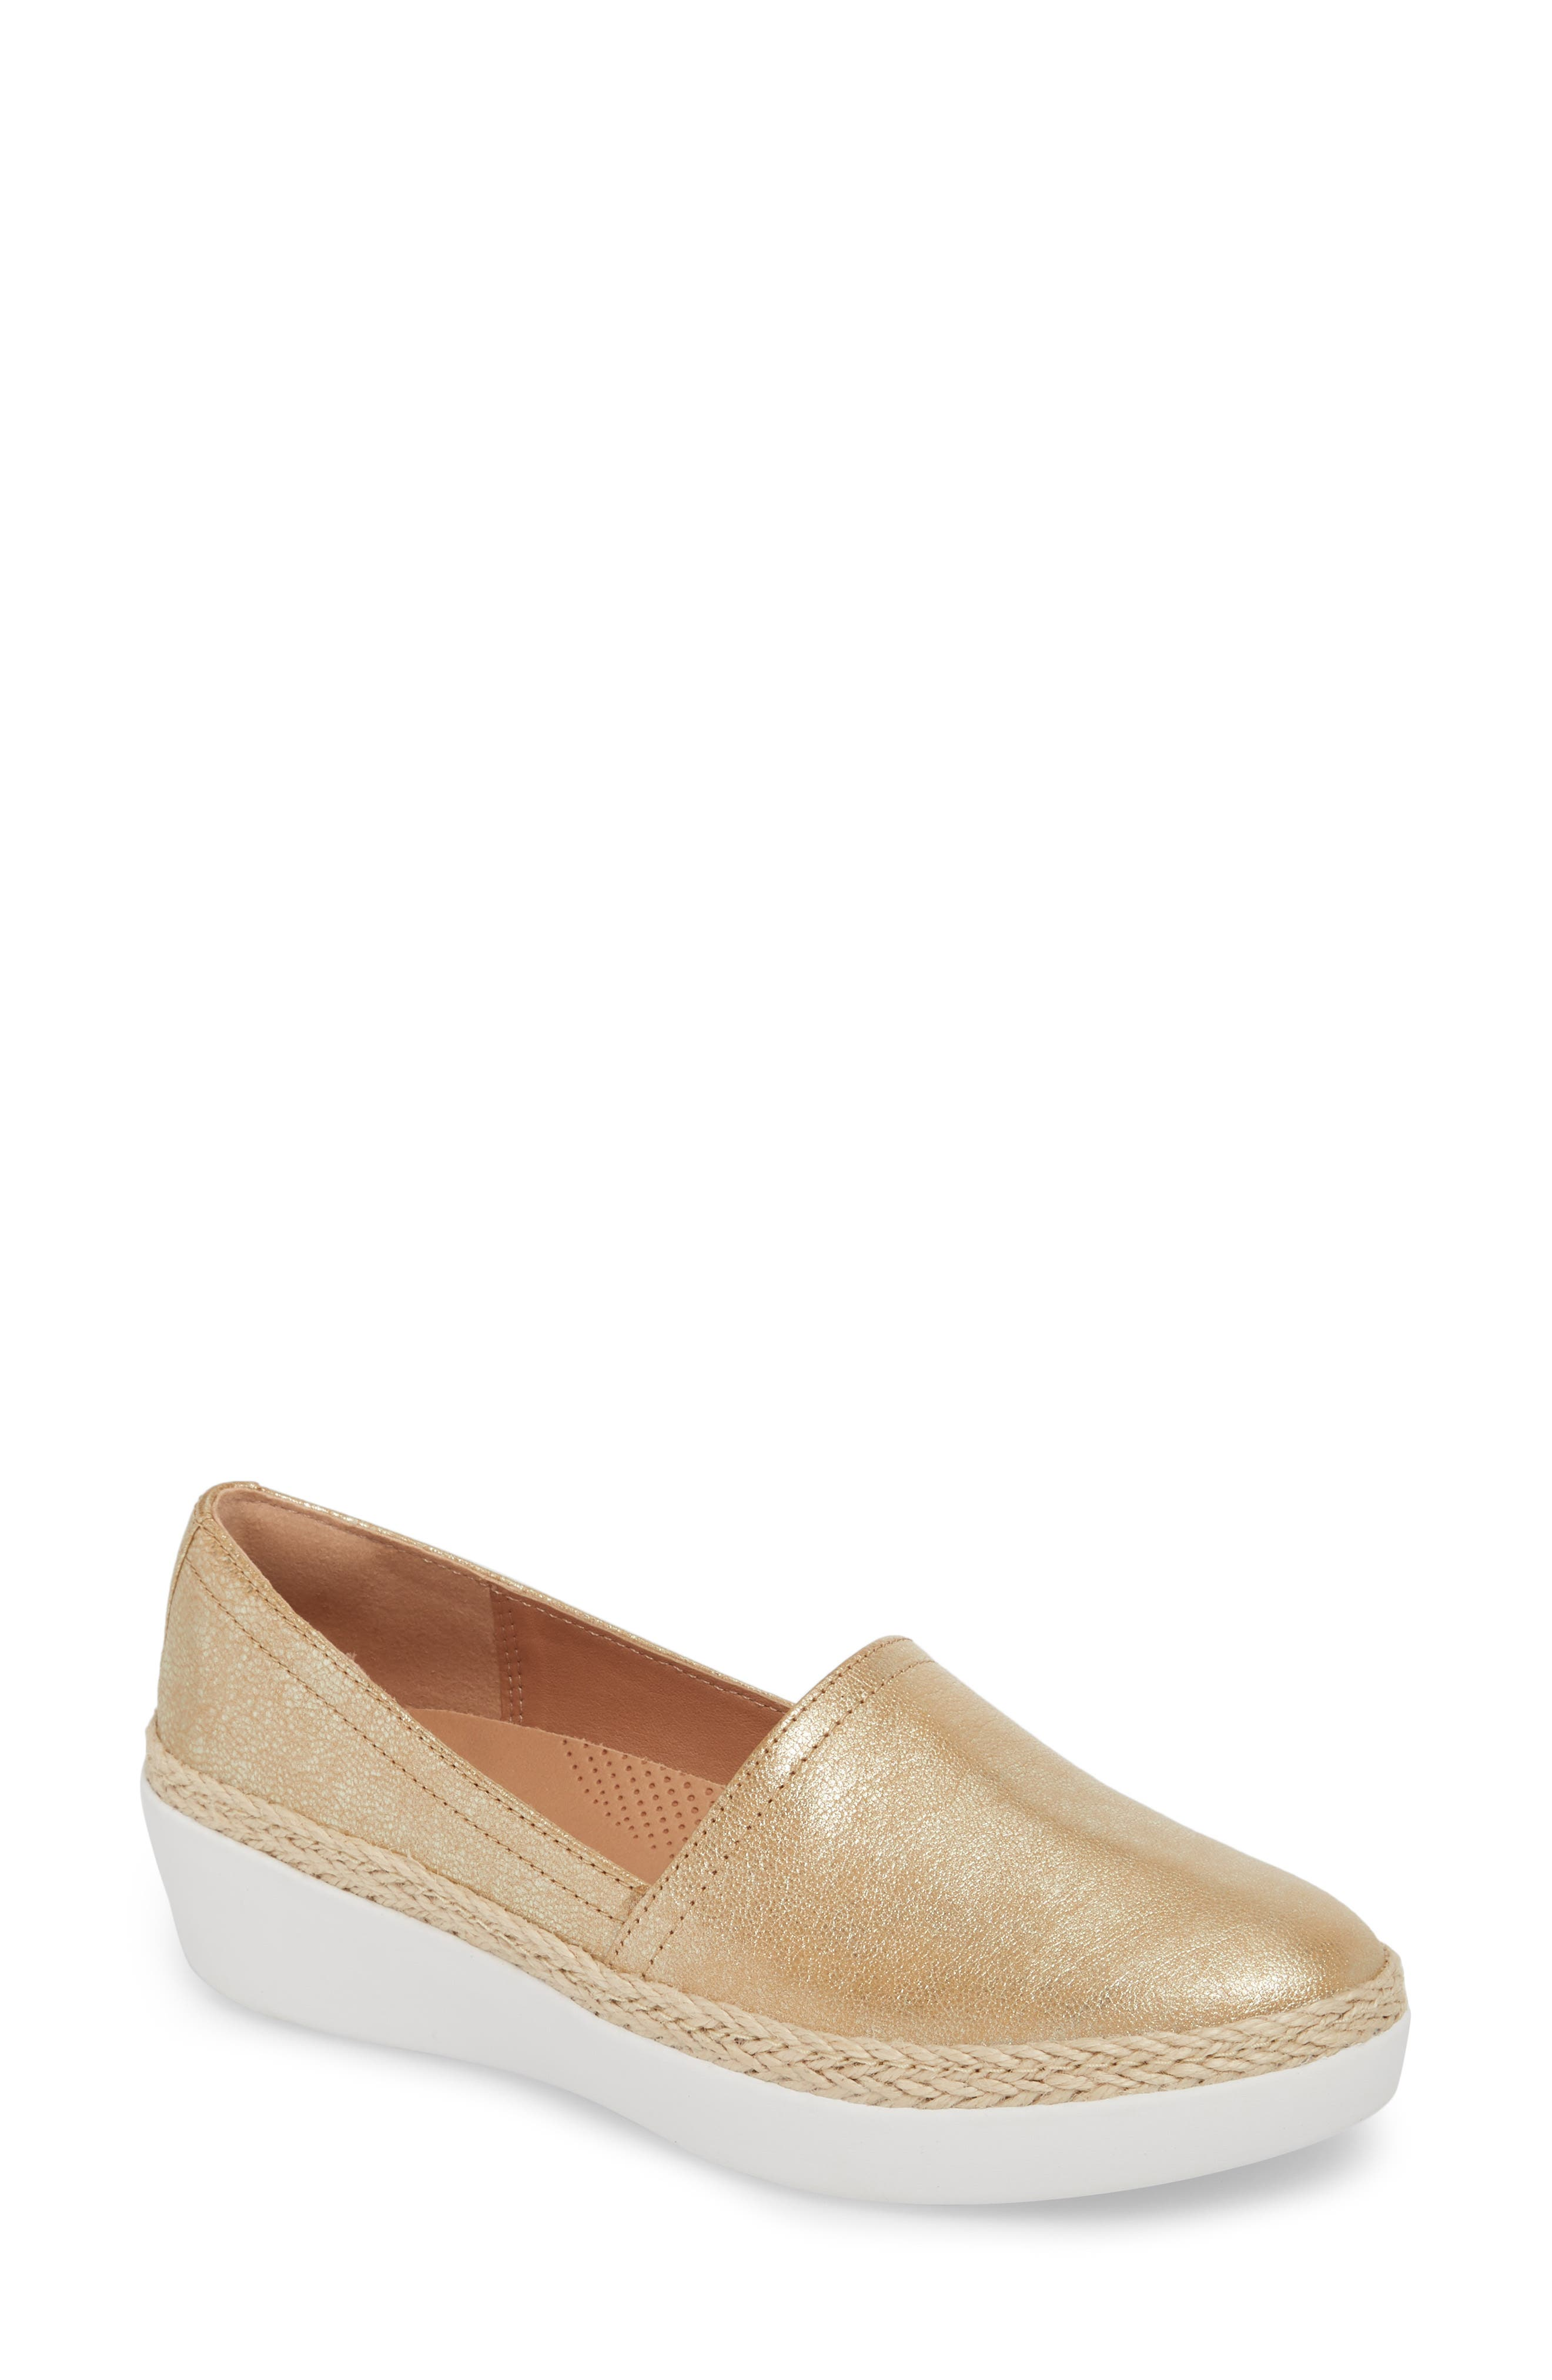 Casa Loafer,                             Main thumbnail 1, color,                             METALLIC GOLD LEATHER